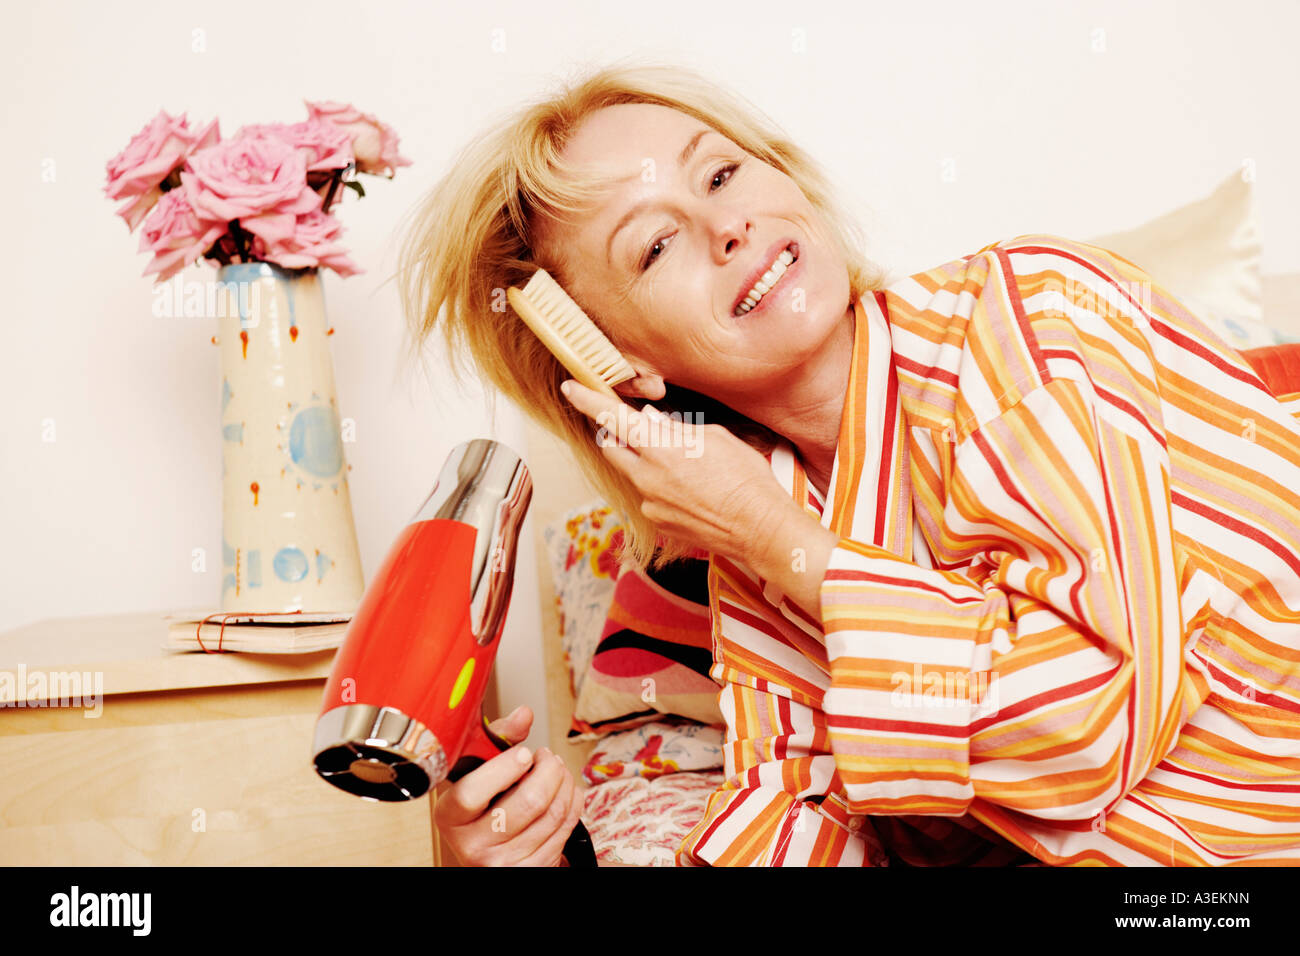 Portrait of a mature woman lying in bed and drying her hair with a hair dryer - Stock Image